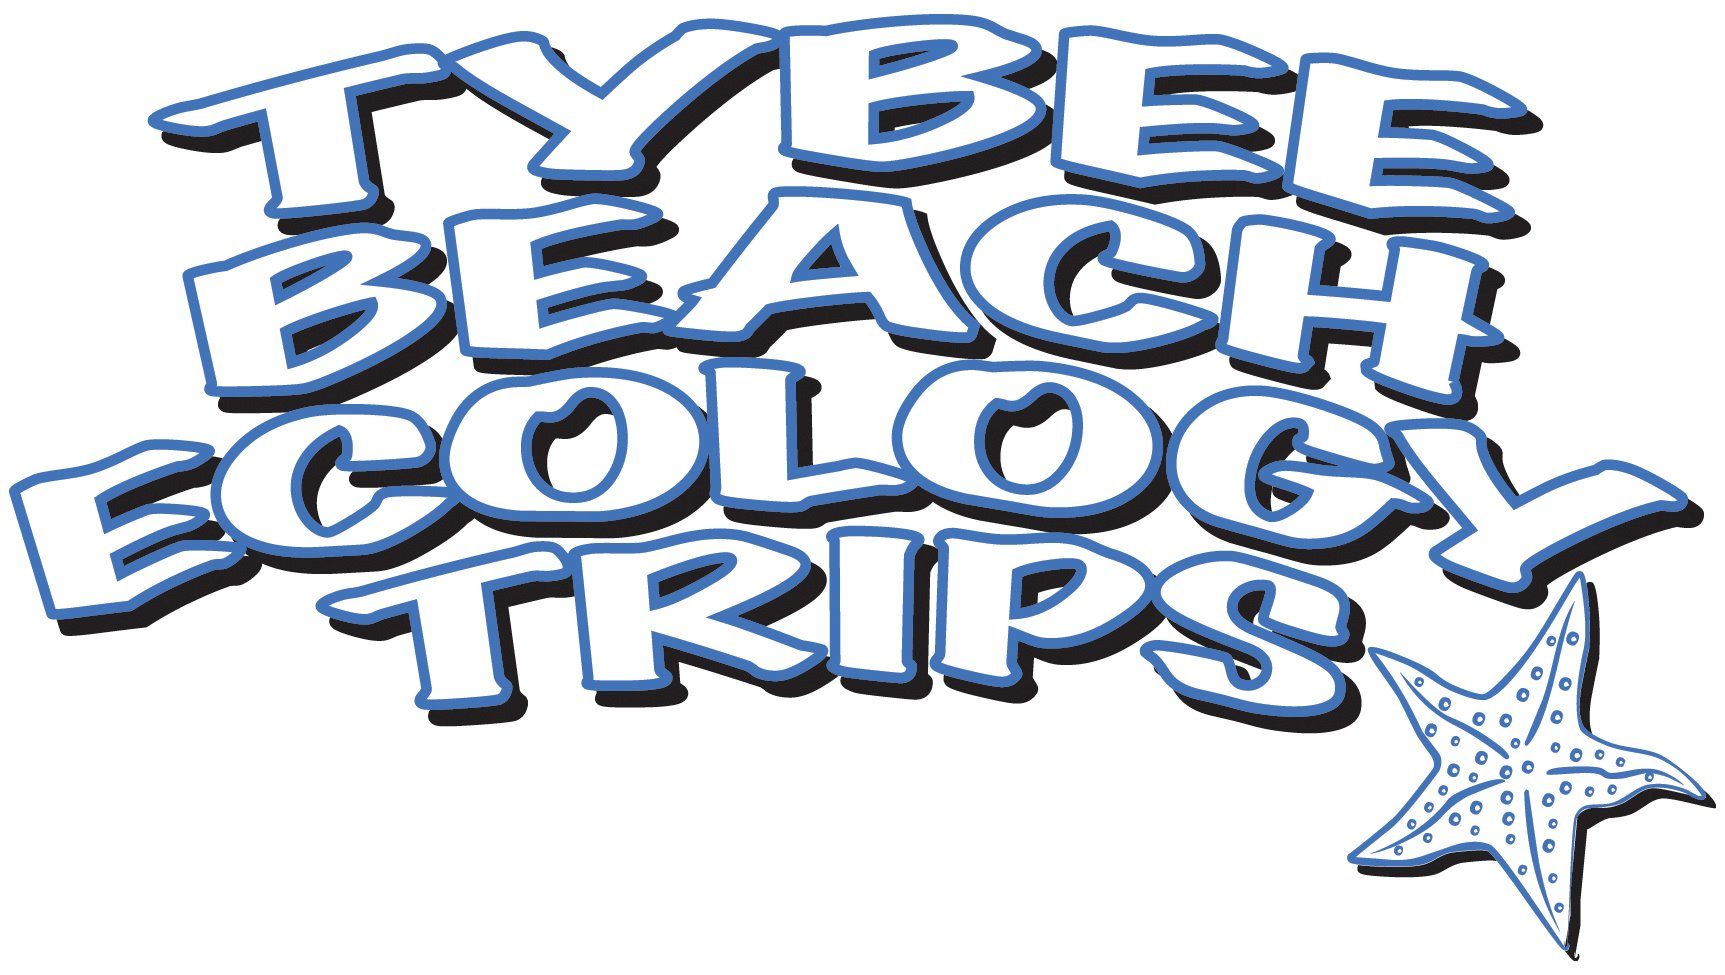 Tybee Joy VacationsBlog Posts Archives - Page 31 of 38 ...